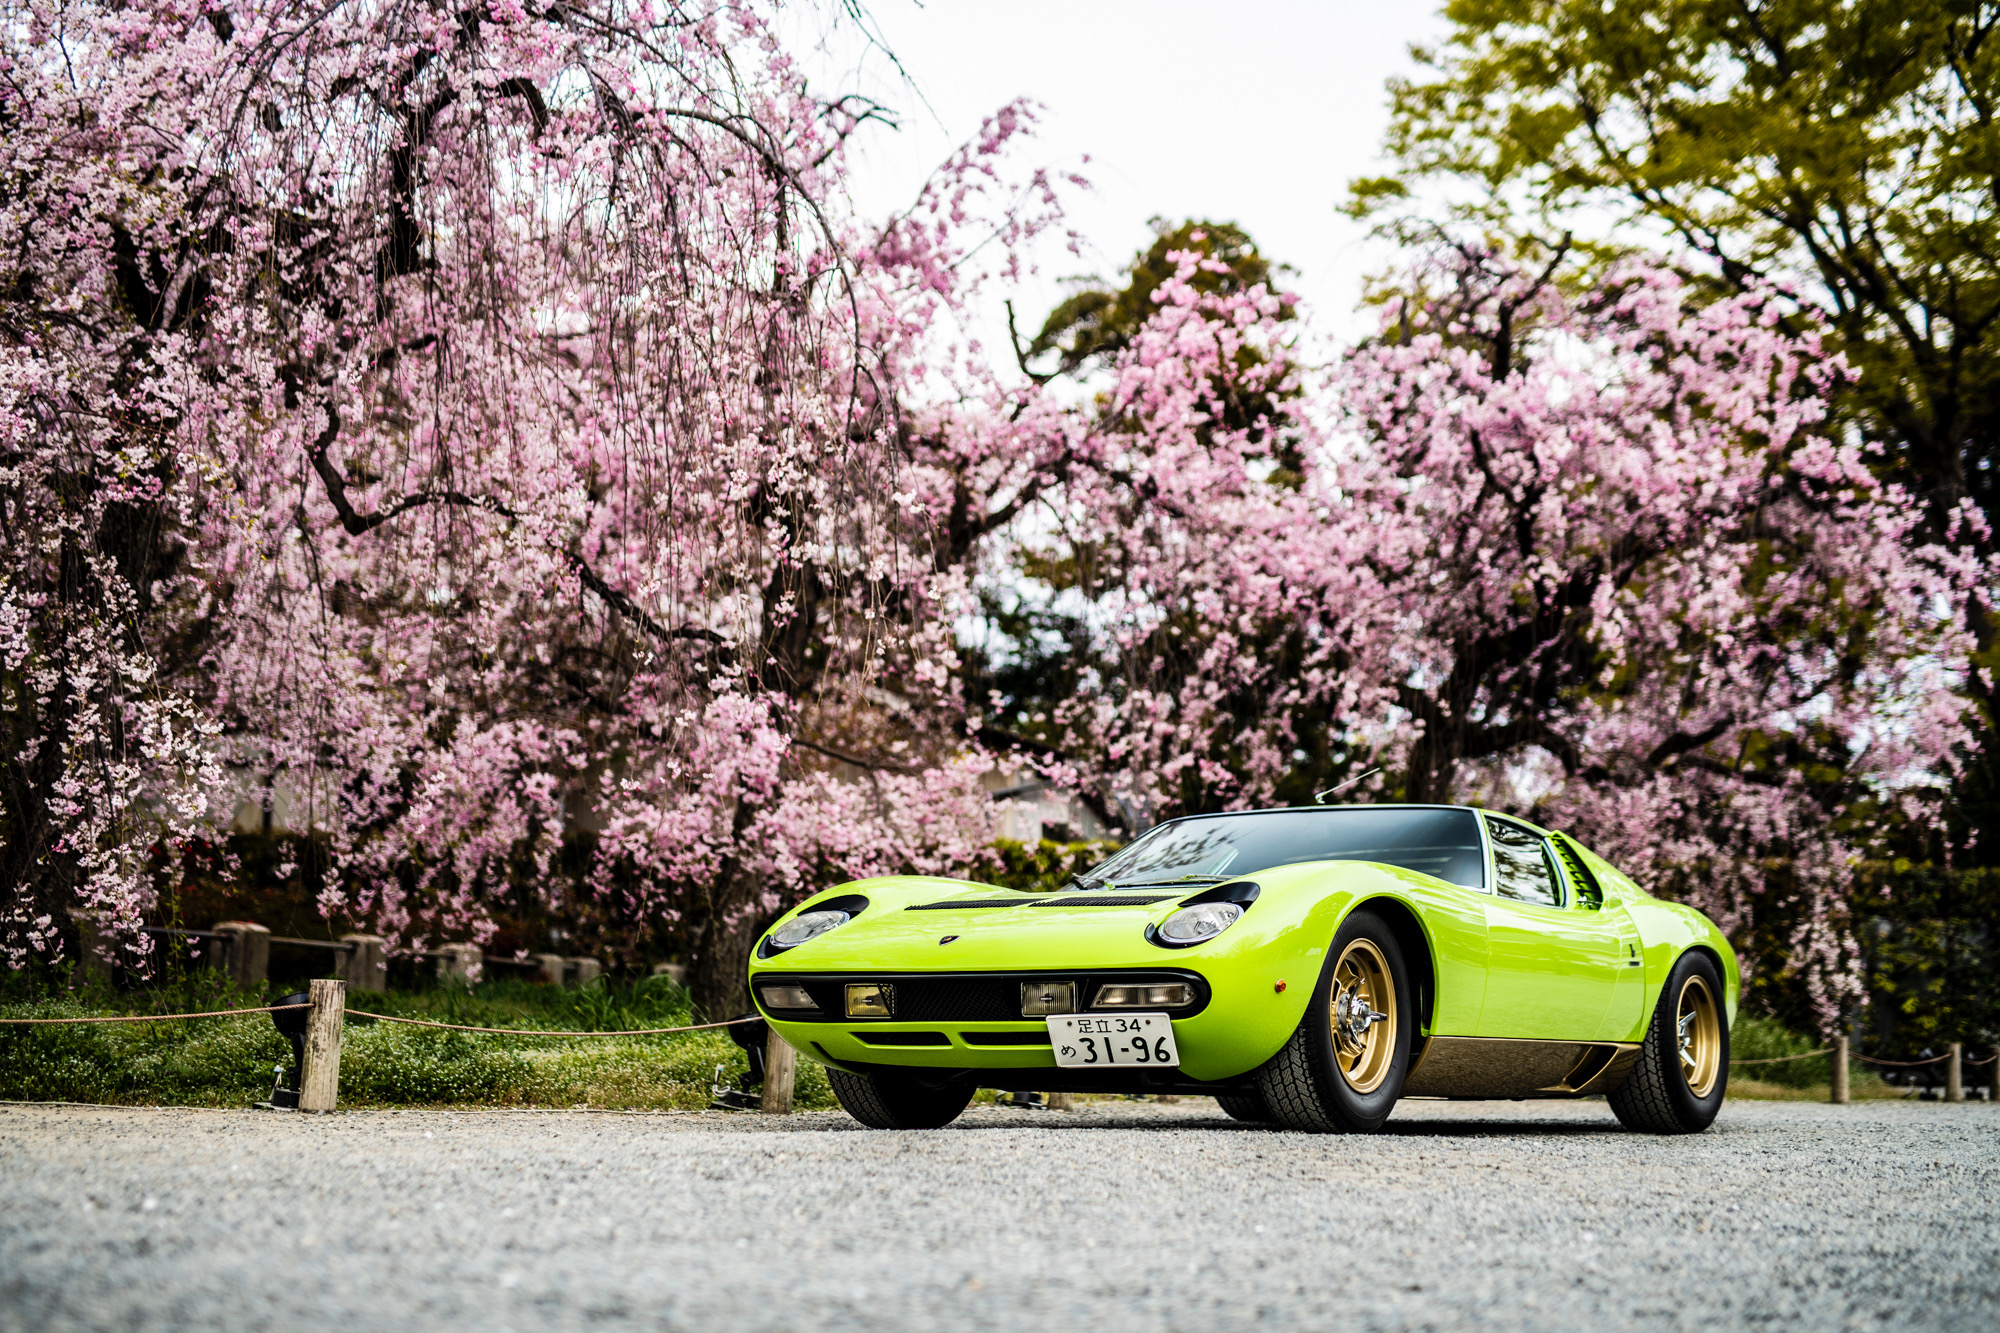 Japanese concours, Lamborghini 3500 GTZ takes top honors at Japanese concours, ClassicCars.com Journal